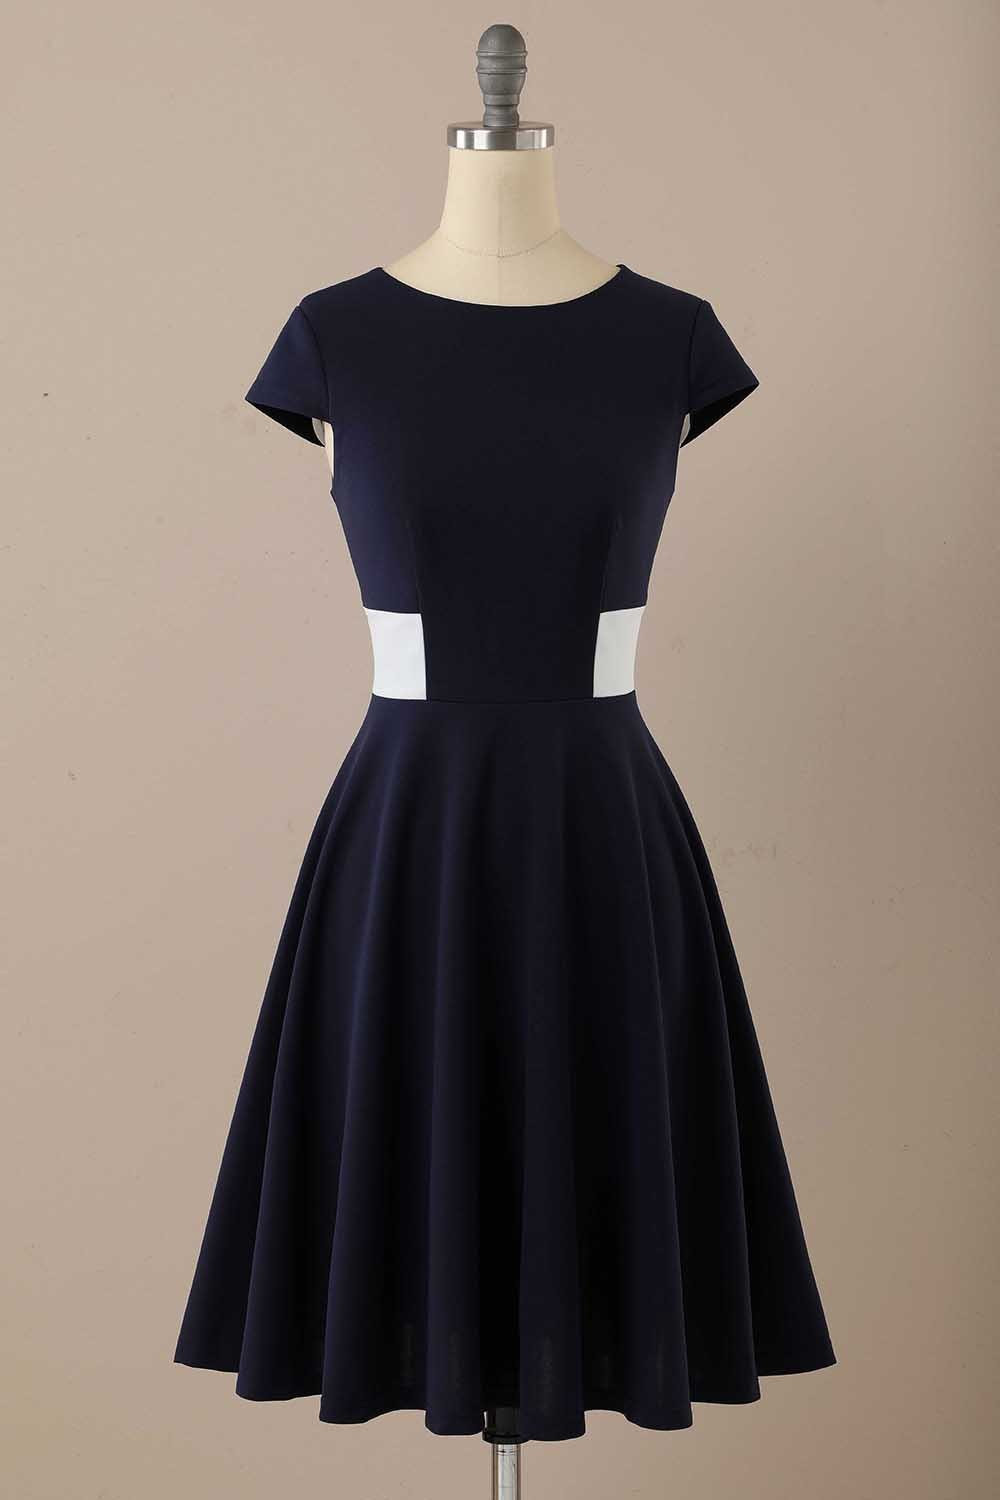 Navy Scoop 1950s Dress with Ruffles